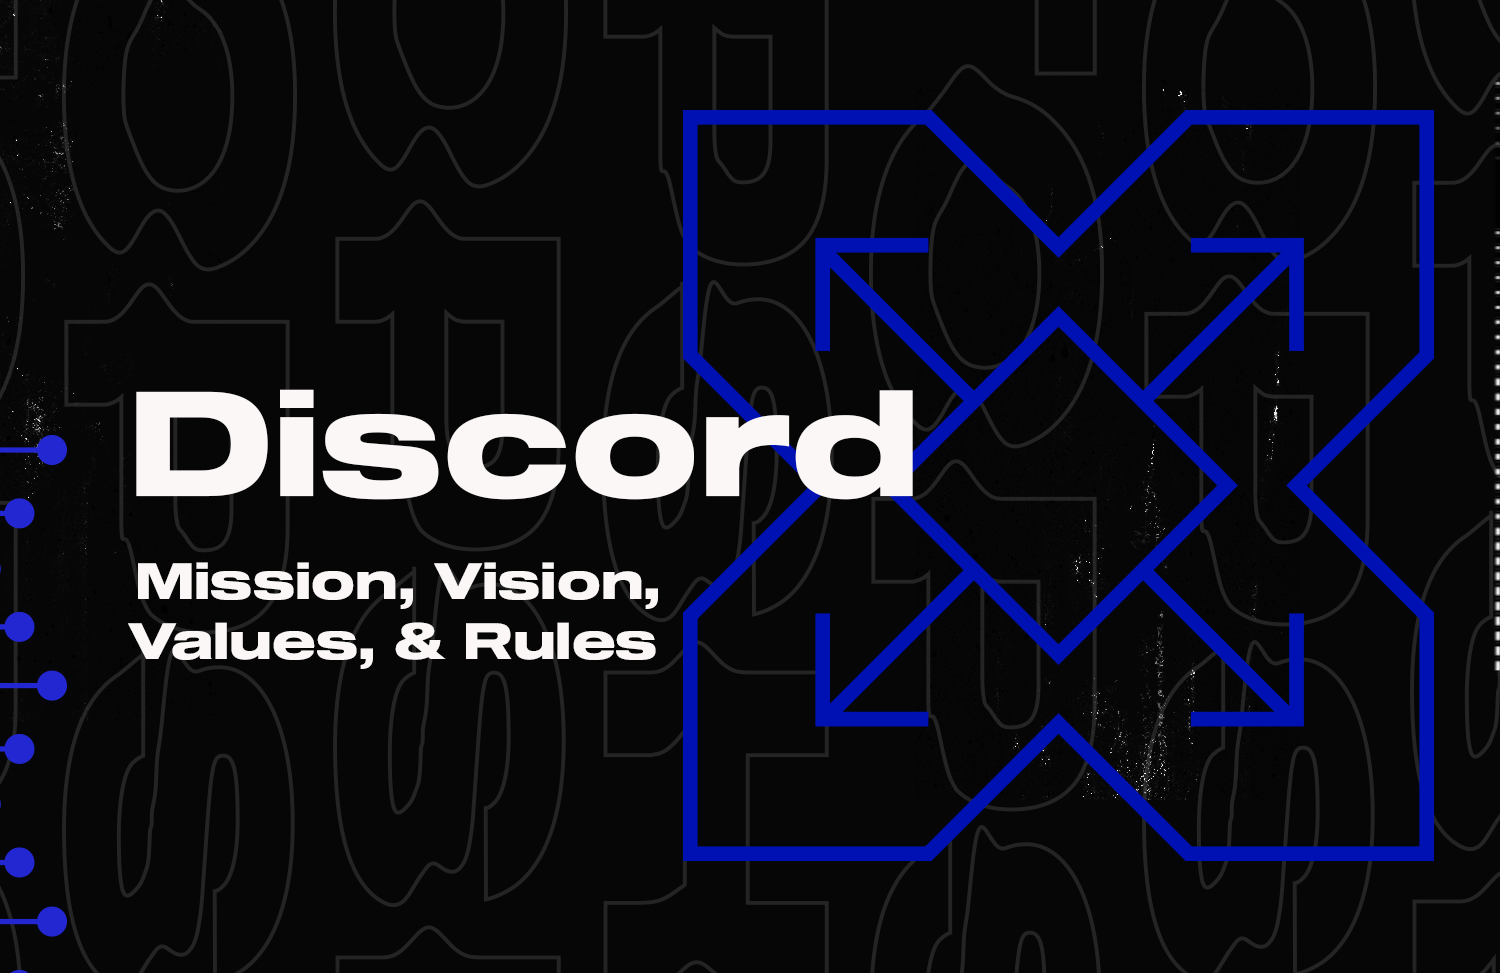 Our Discord community has 300K+ members already. It's time we establish some ground rules.